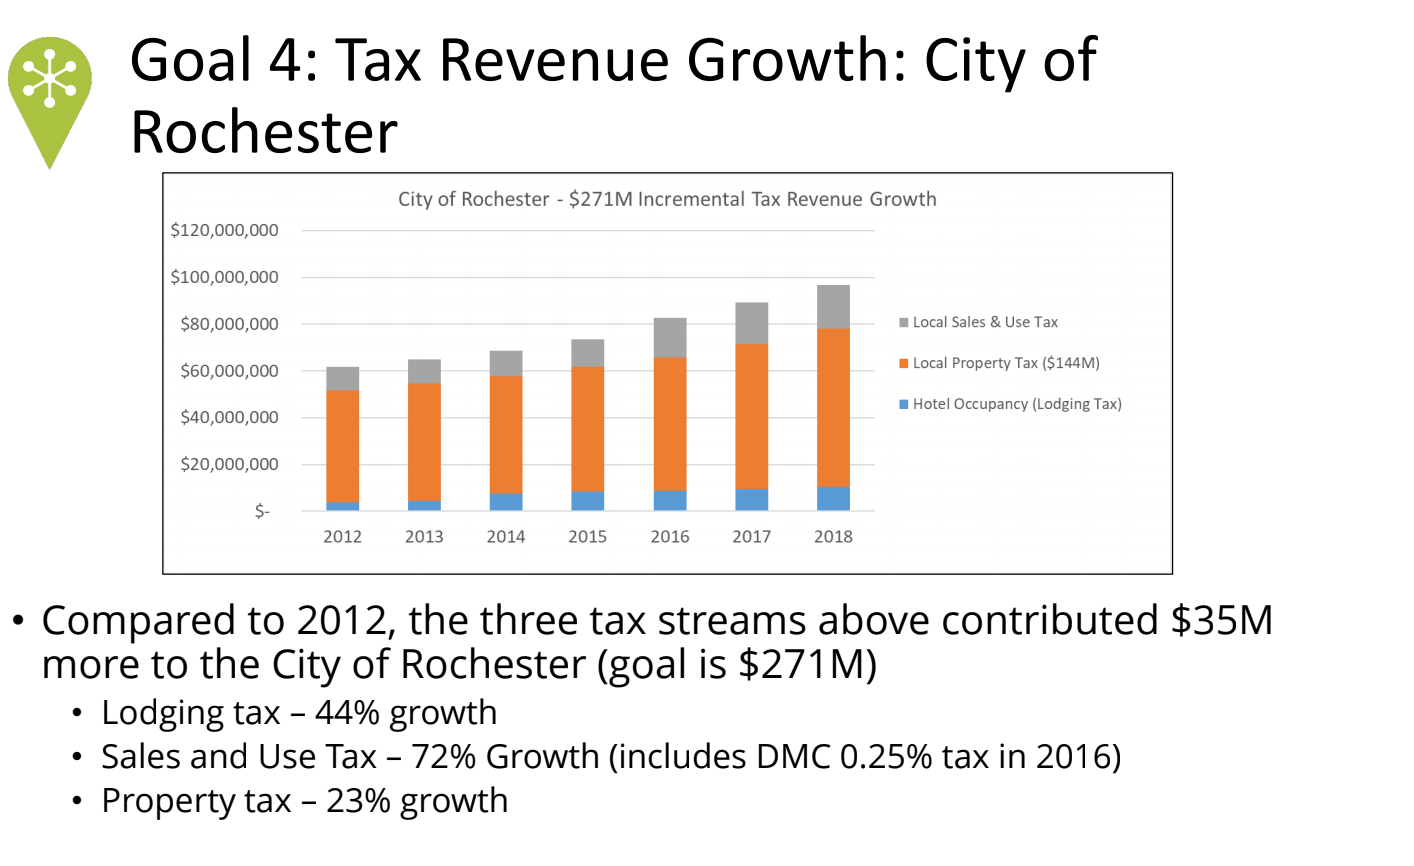 <a href = 'http://dmcportal.dmcbeam.org/olmsted-county-community-health/1dd24c7620824391af5413f4feee85e9#section-21' target='_blank' >Rochester Tax Revenues</a>